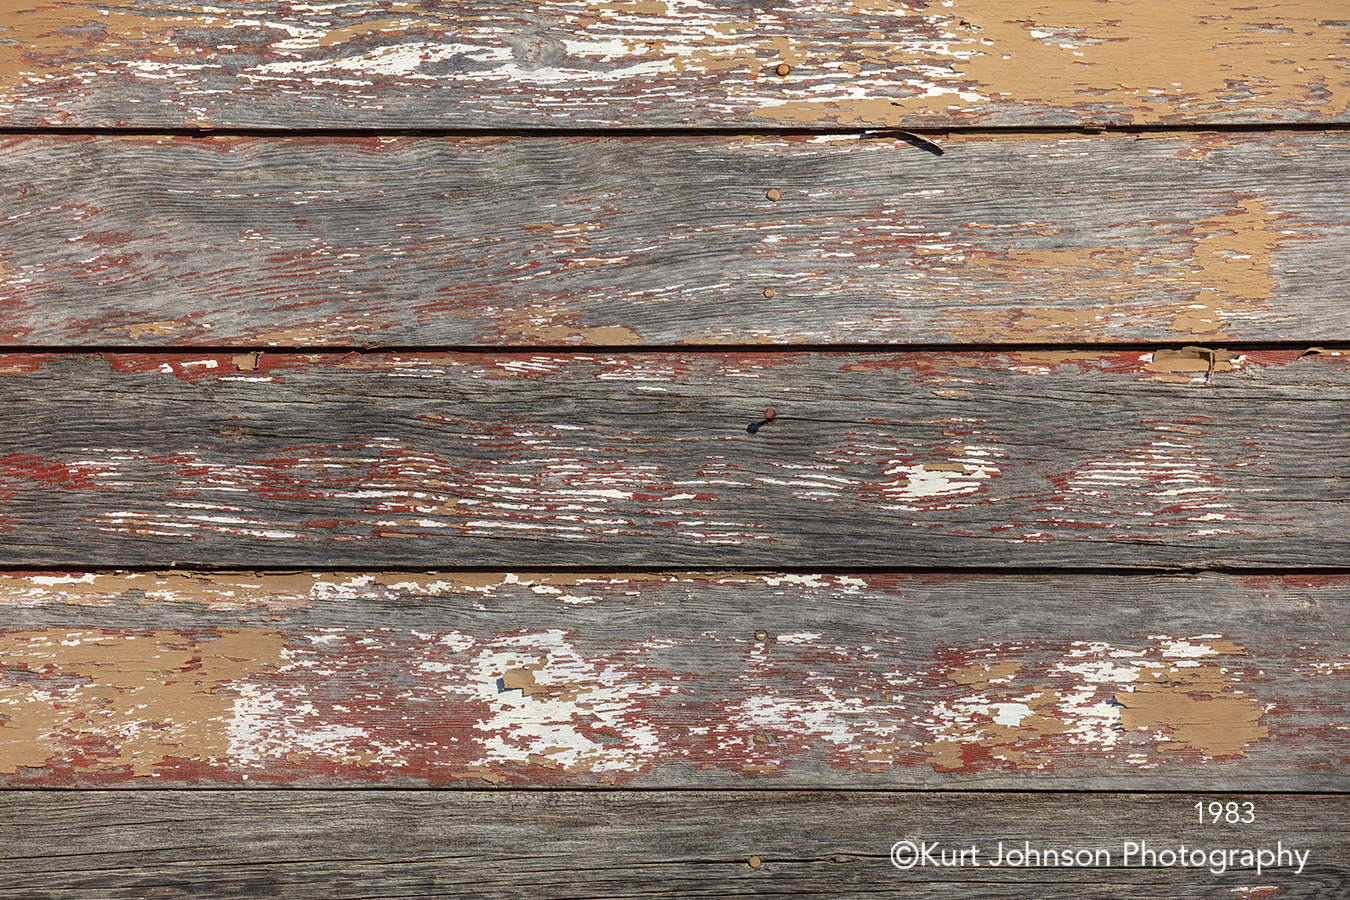 wood layers paint rust detail texture age textures lines pattern red gray brown